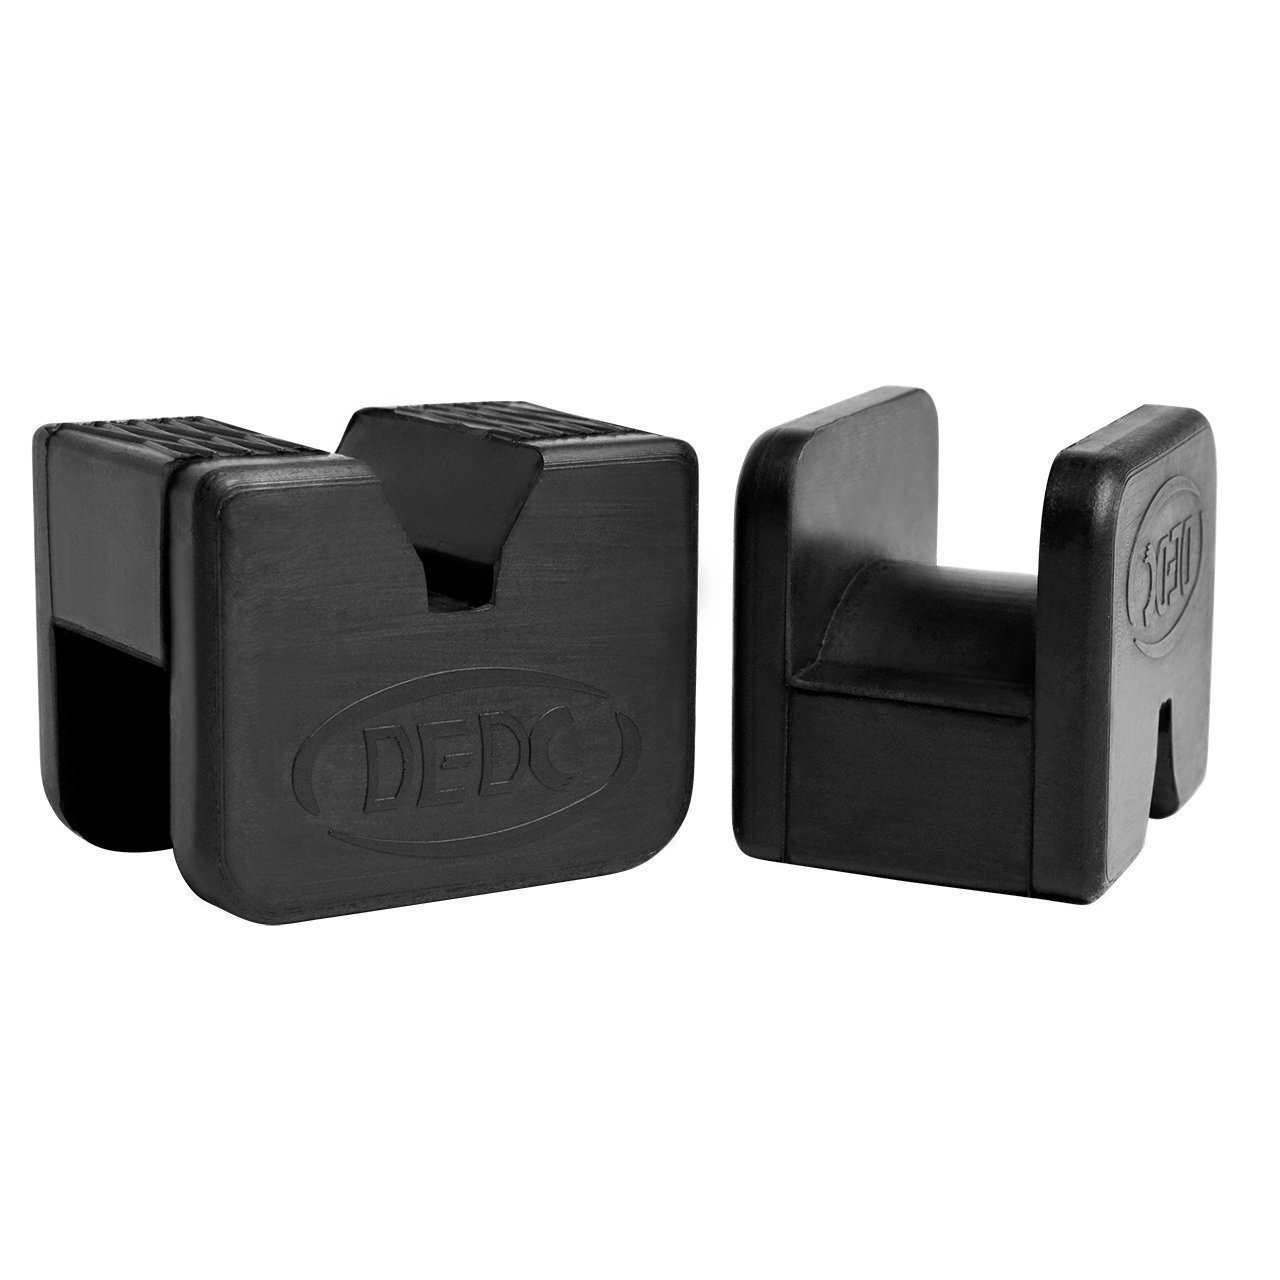 DEDC Jack Pad Universal Slotted Frame Rubber Frame Rail Protector Pinch Weld Protector (2 Pack)